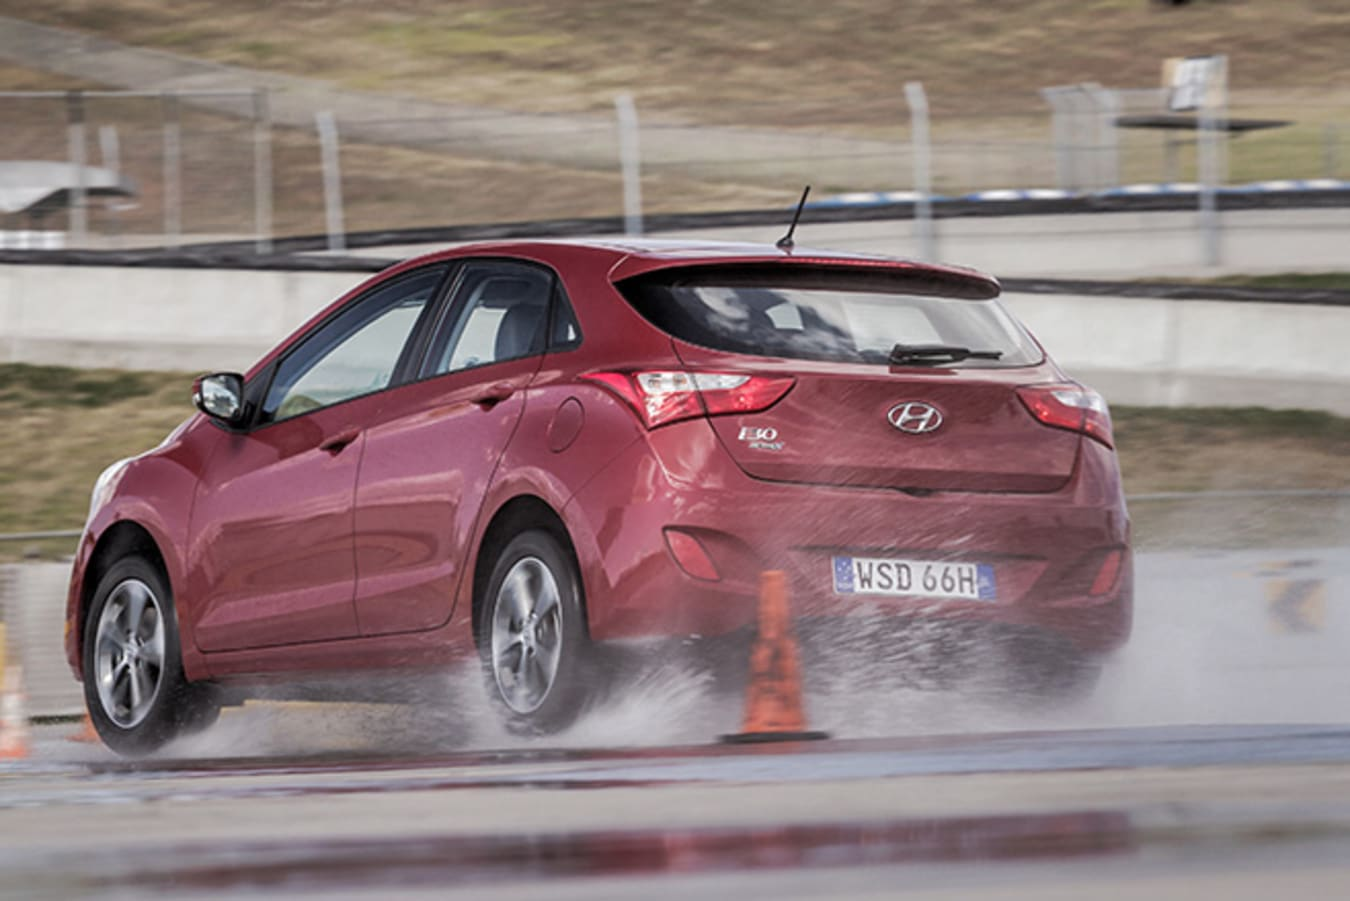 Hyundai i30 rear driving on wet road test track